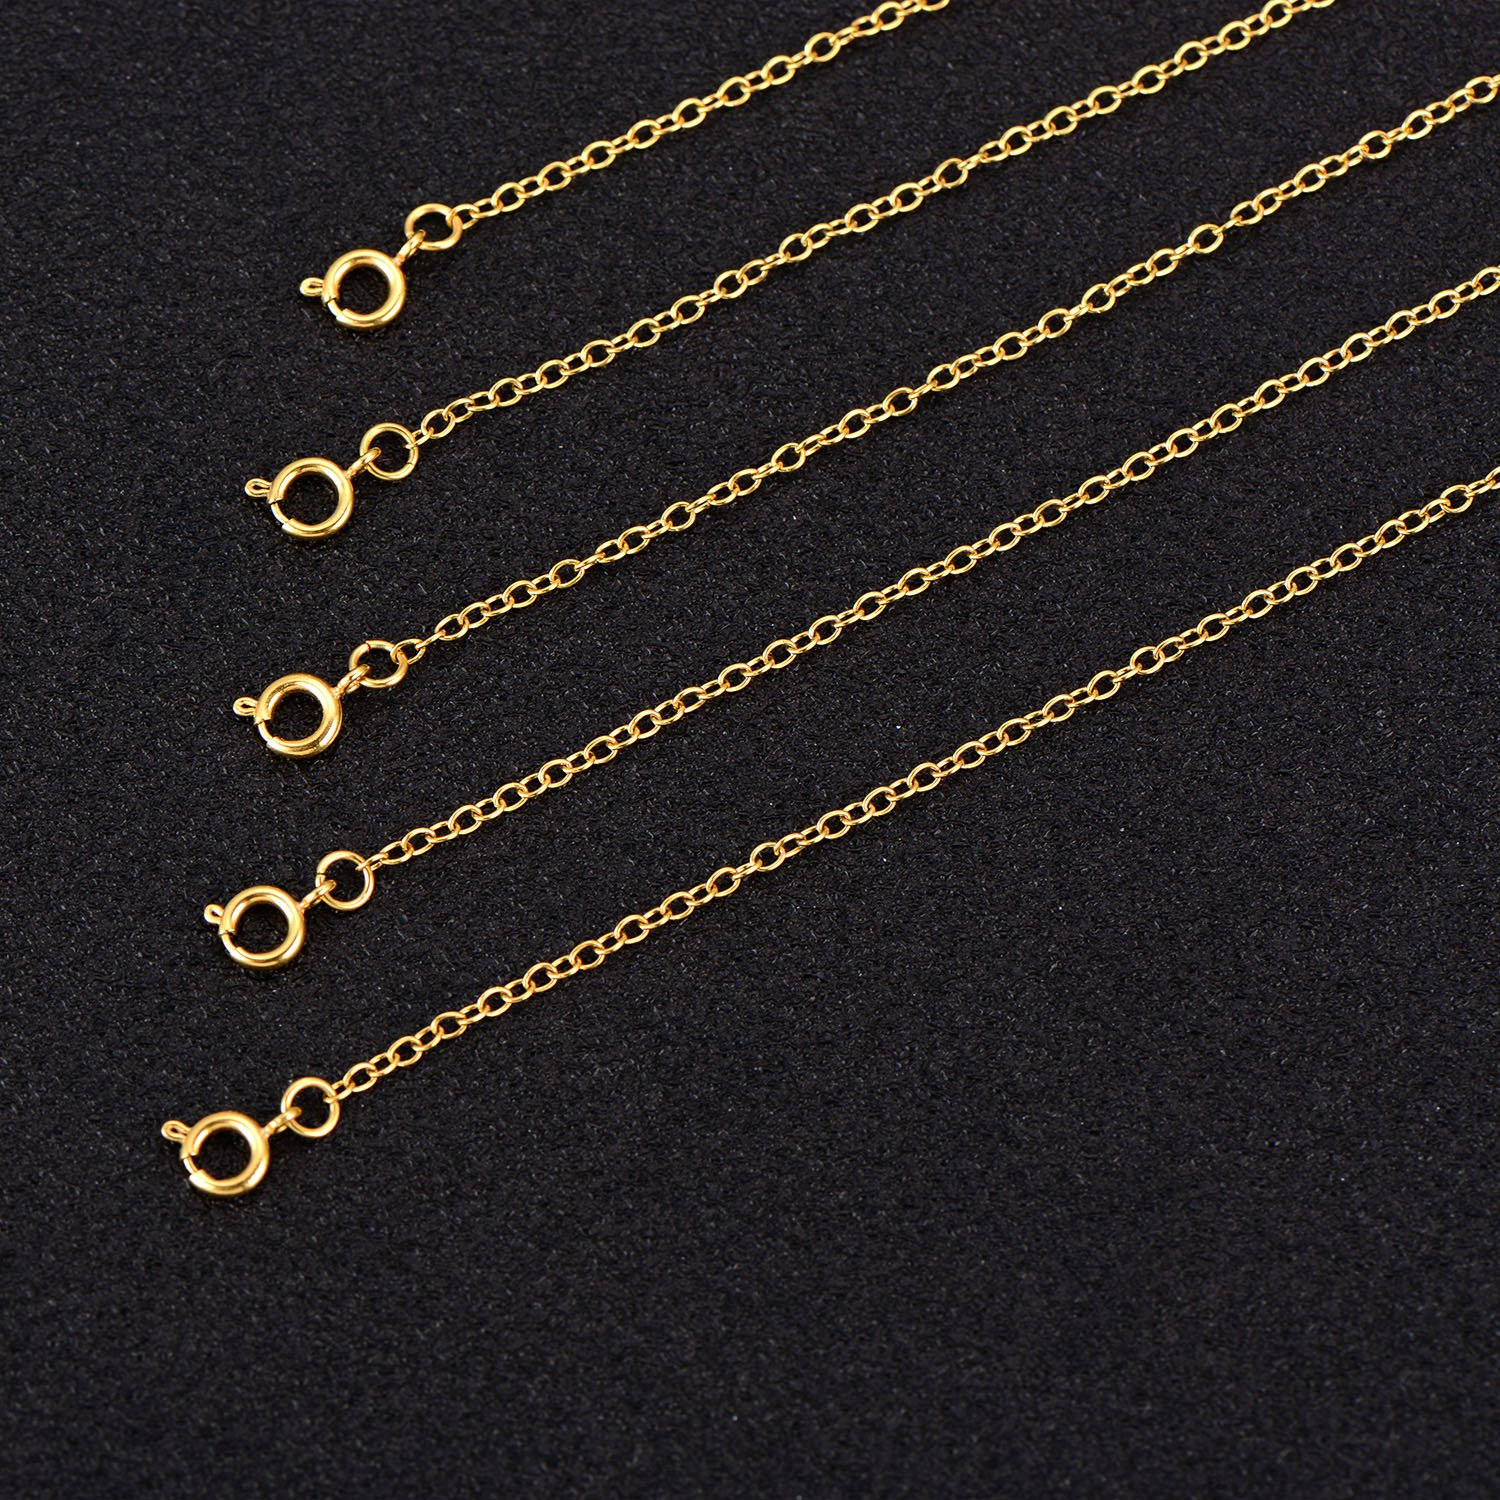 Gold Mudder 5 Pieces Necklace Extenders Bracelet Extender Chain Set for Necklace Bracelet DIY Jewelry Making